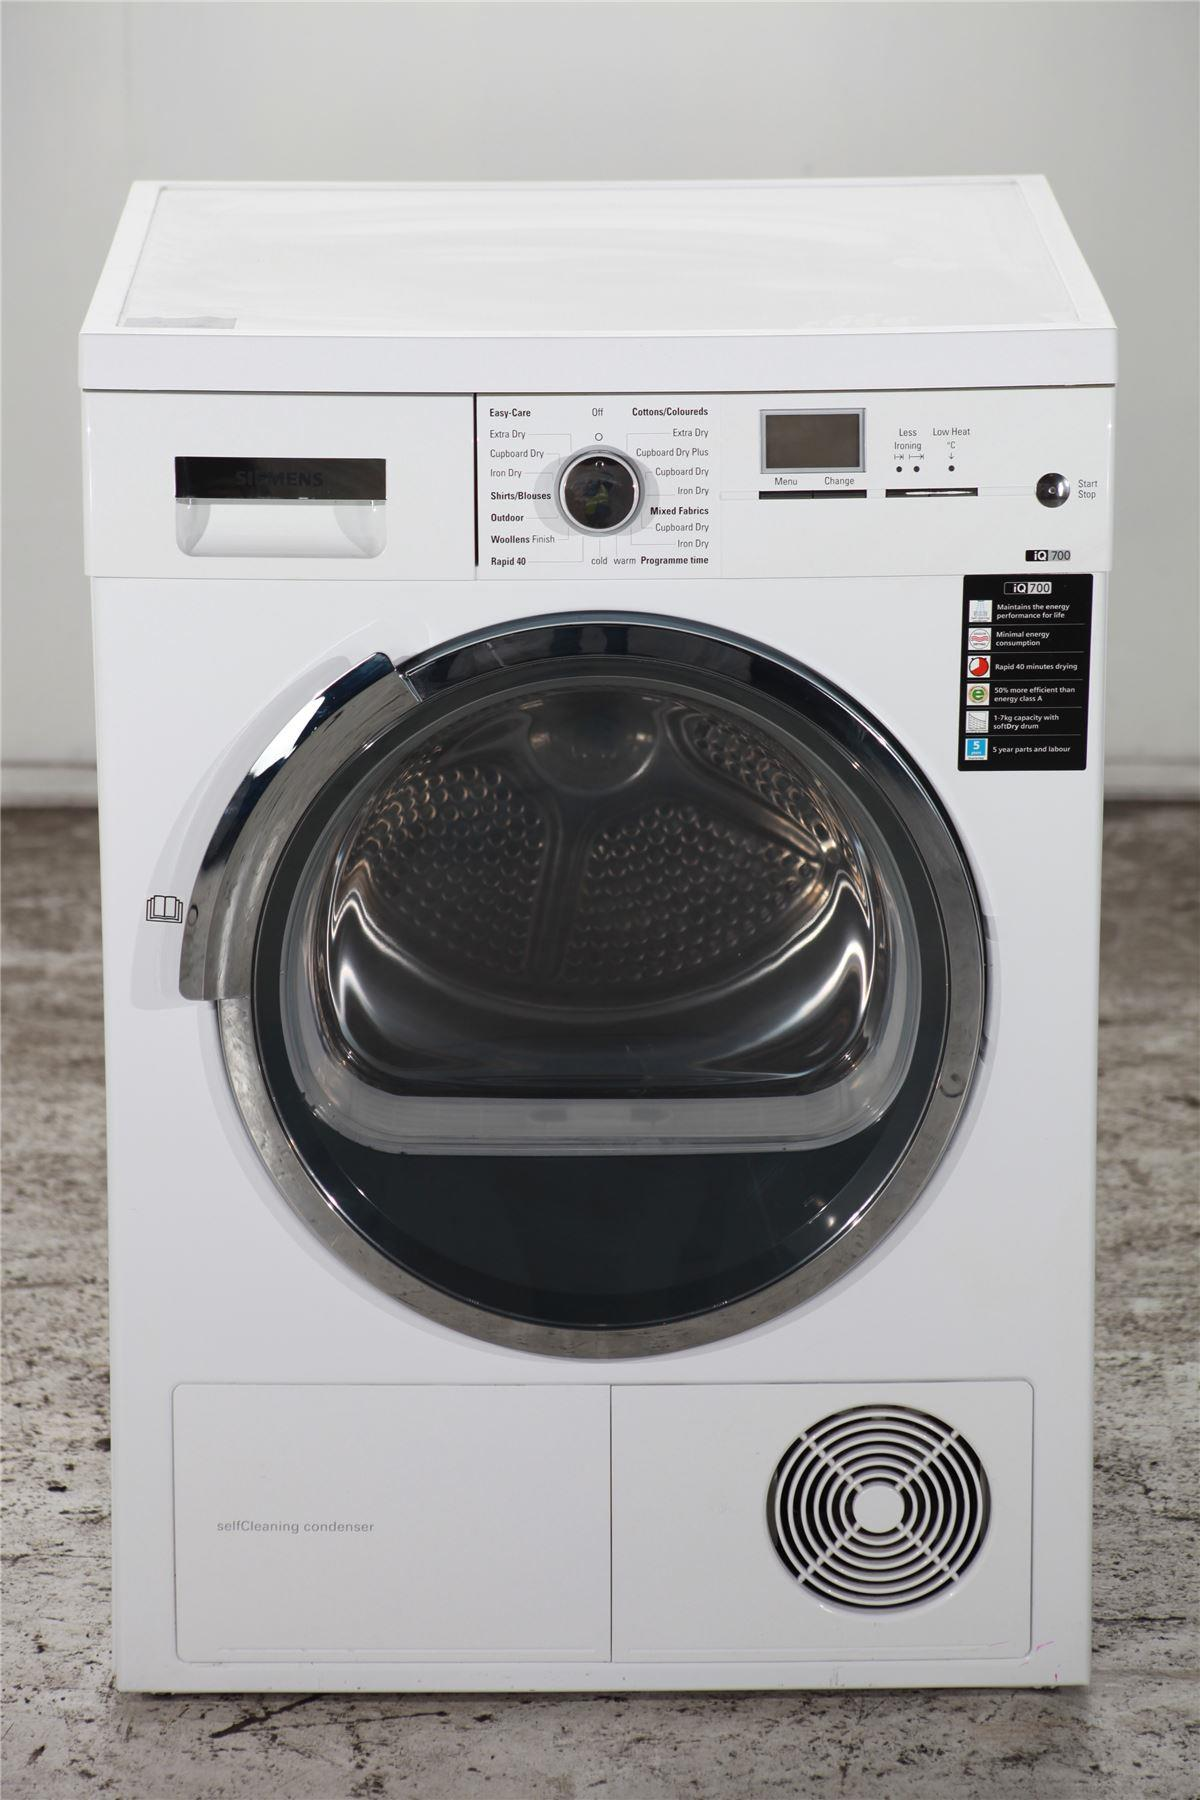 siemens iq700 7kg tumble dryer wt46w566gb white. Black Bedroom Furniture Sets. Home Design Ideas